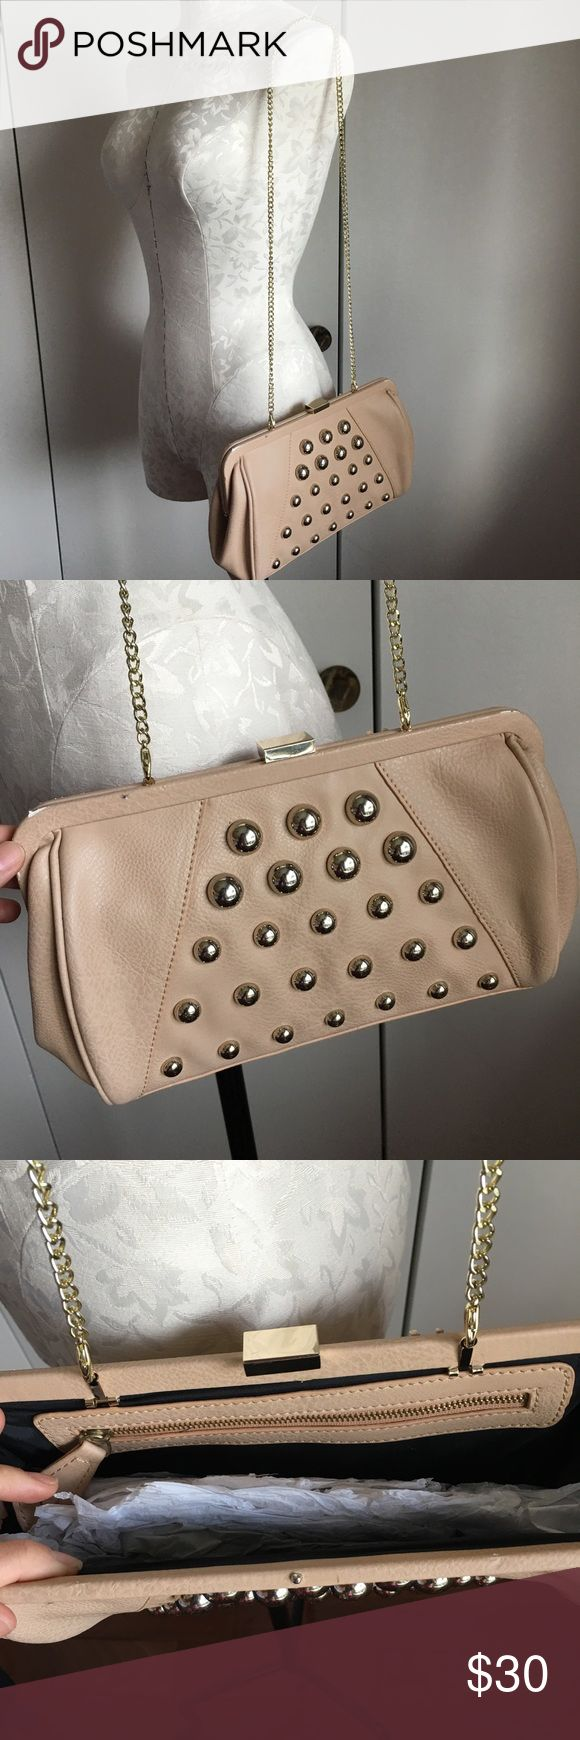 Nude/ beige studded clutch/ shoulder chain bag Brand new with tags! Kardashian Kollection Bags Crossbody Bags